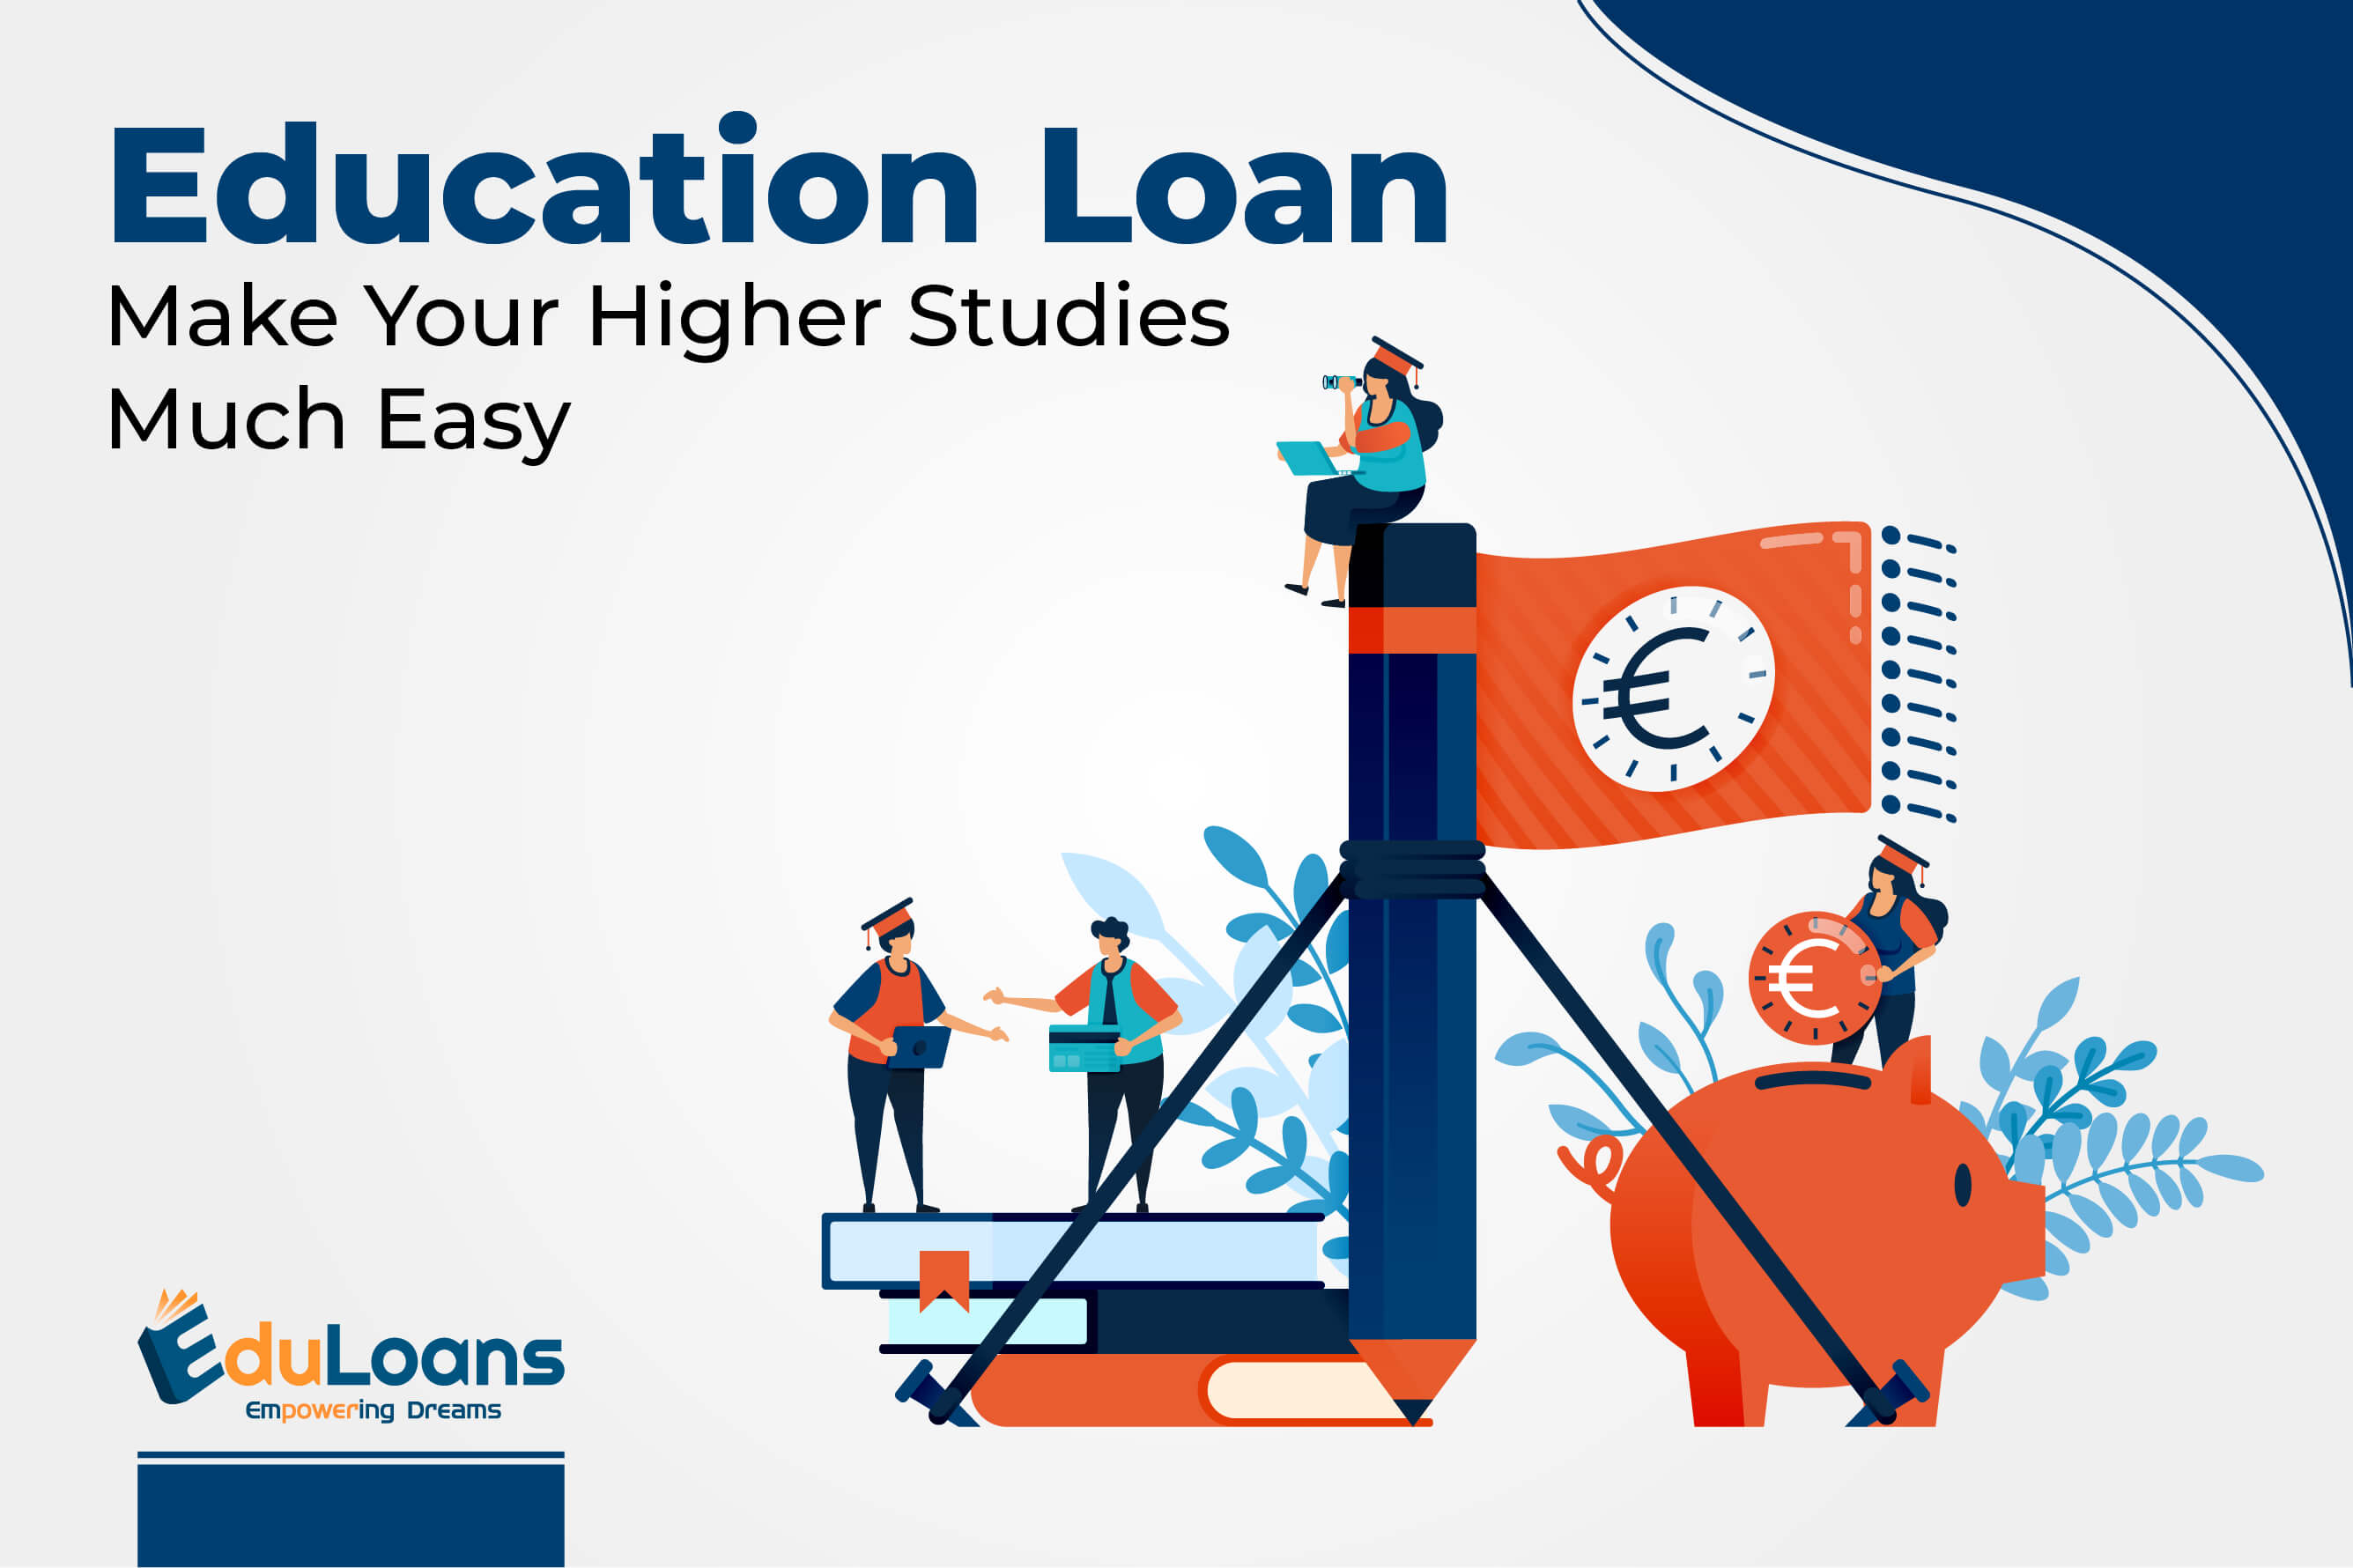 Education Loan -Make Your Higher Studies Much Easy